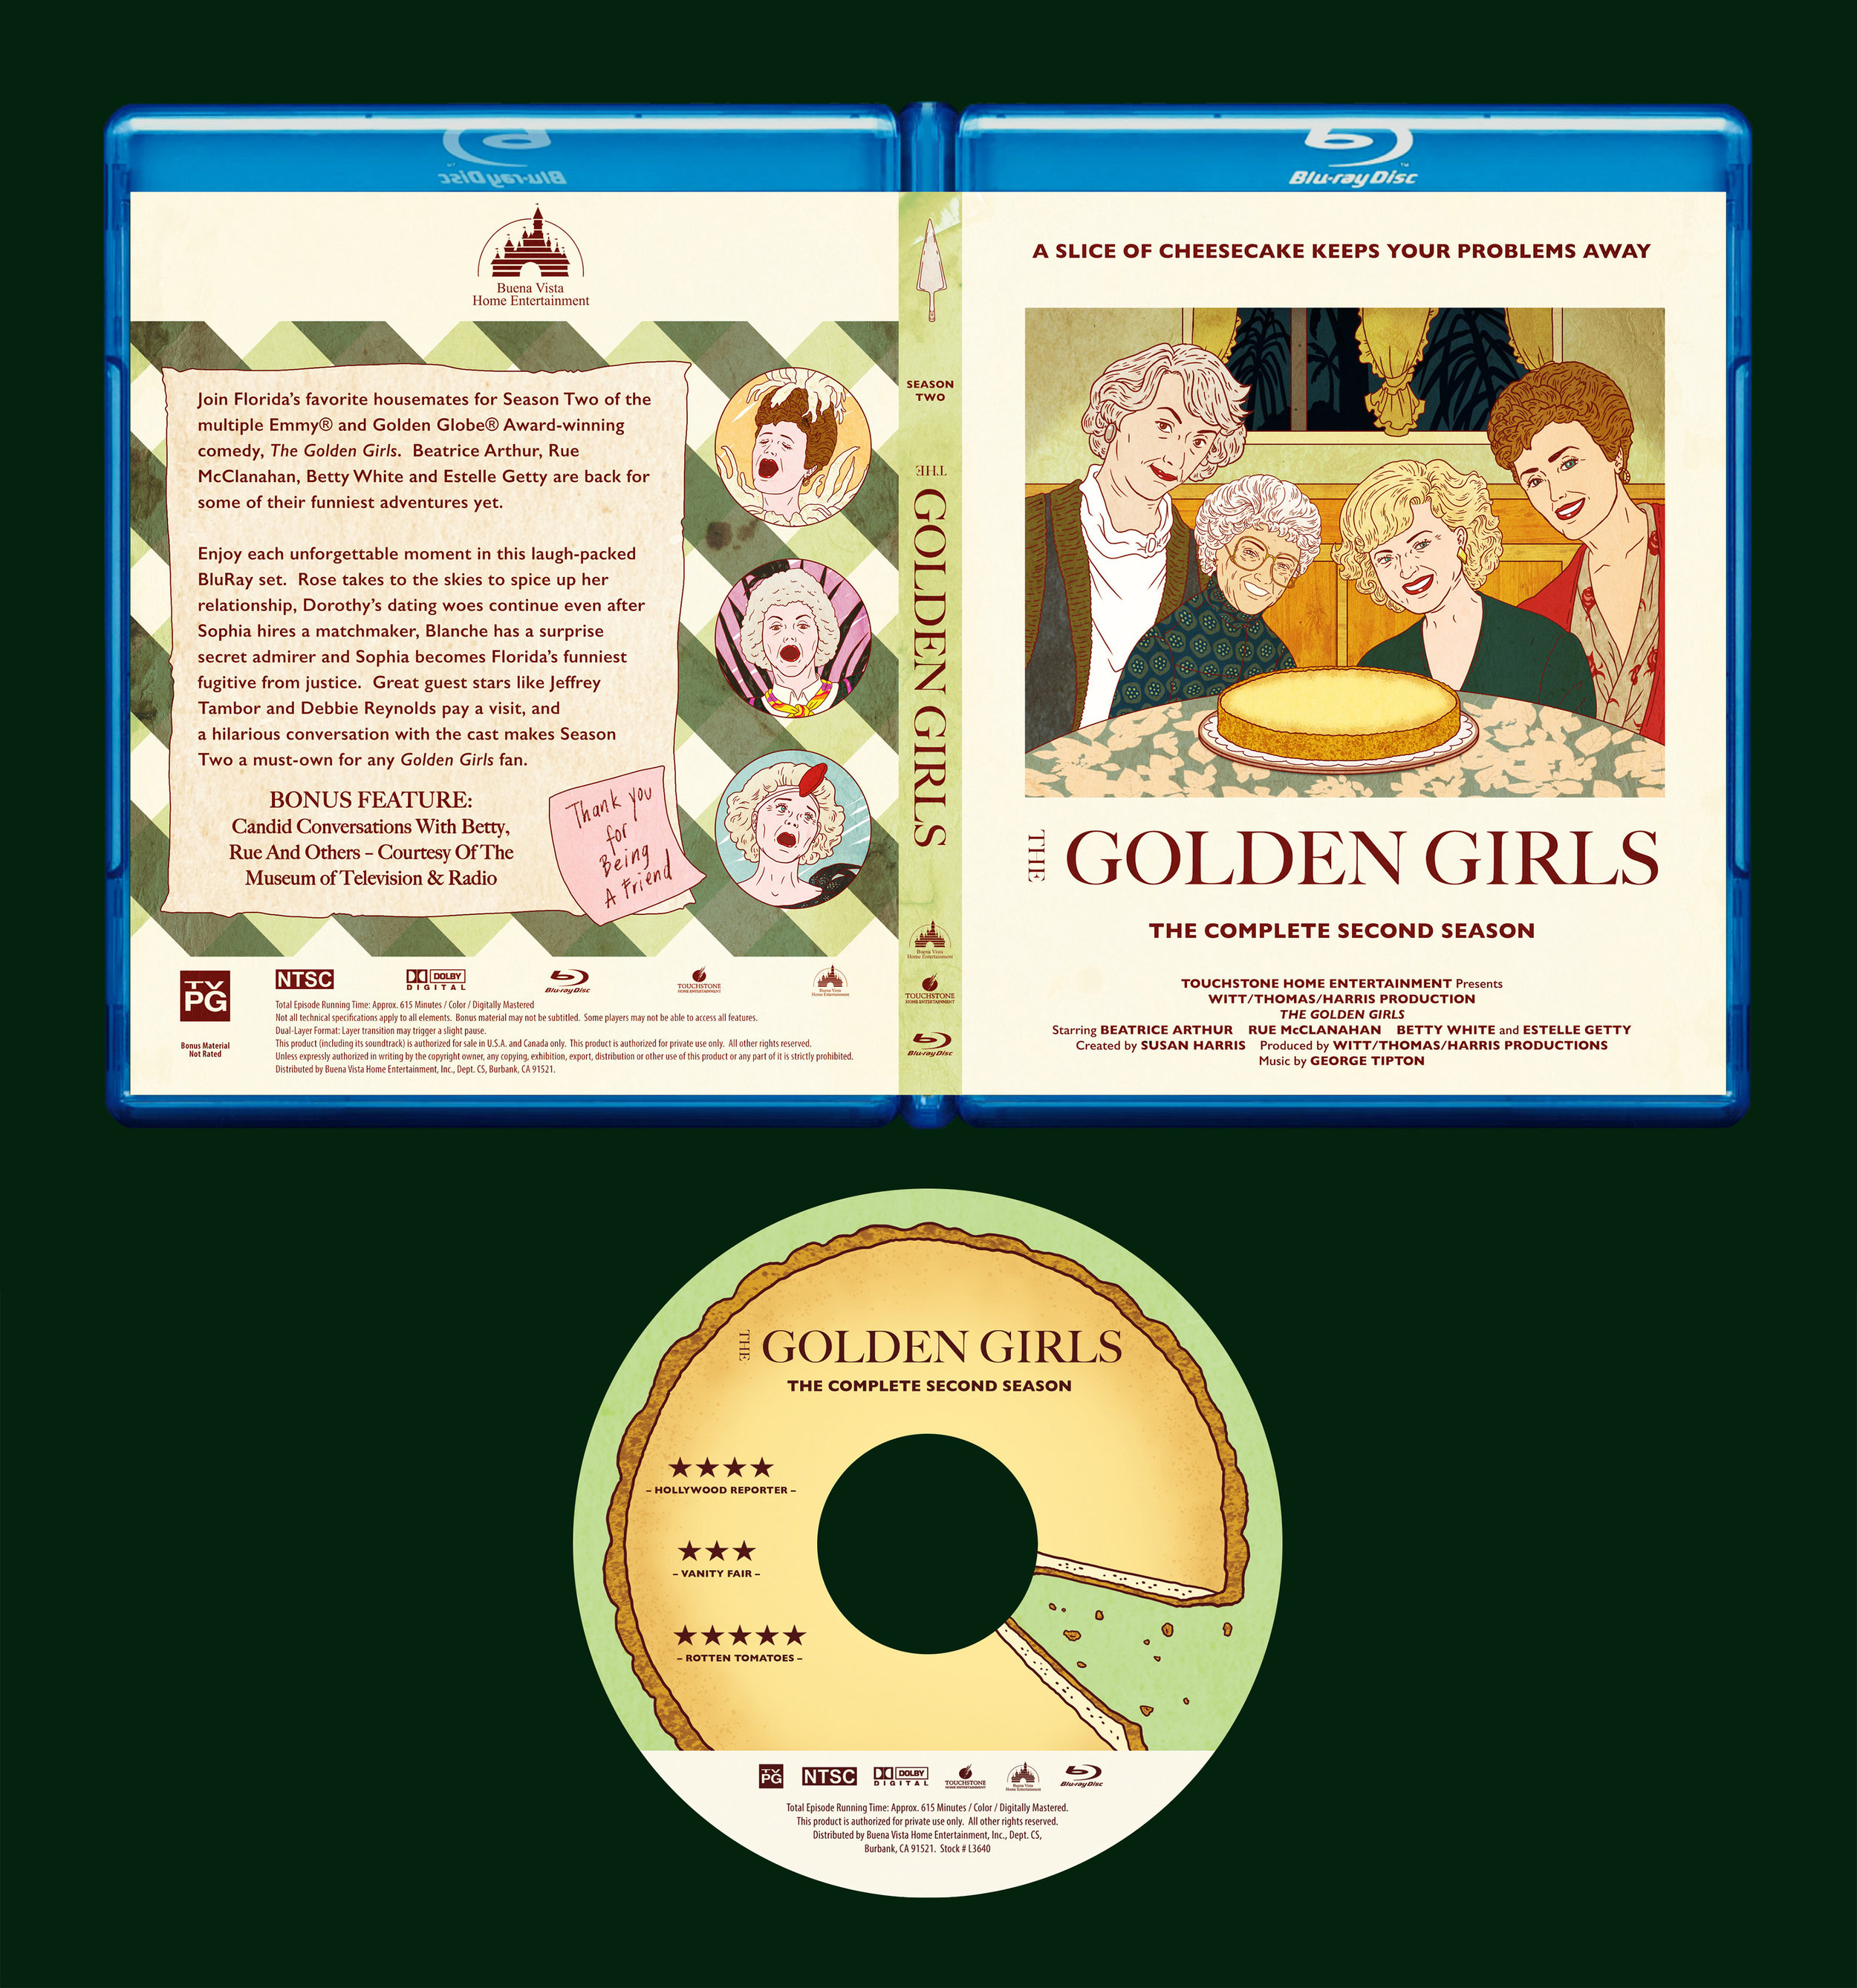 MINI-SYS.COM Shirley Susilo golden girls 2 bluray packaging disc label design square.jpg